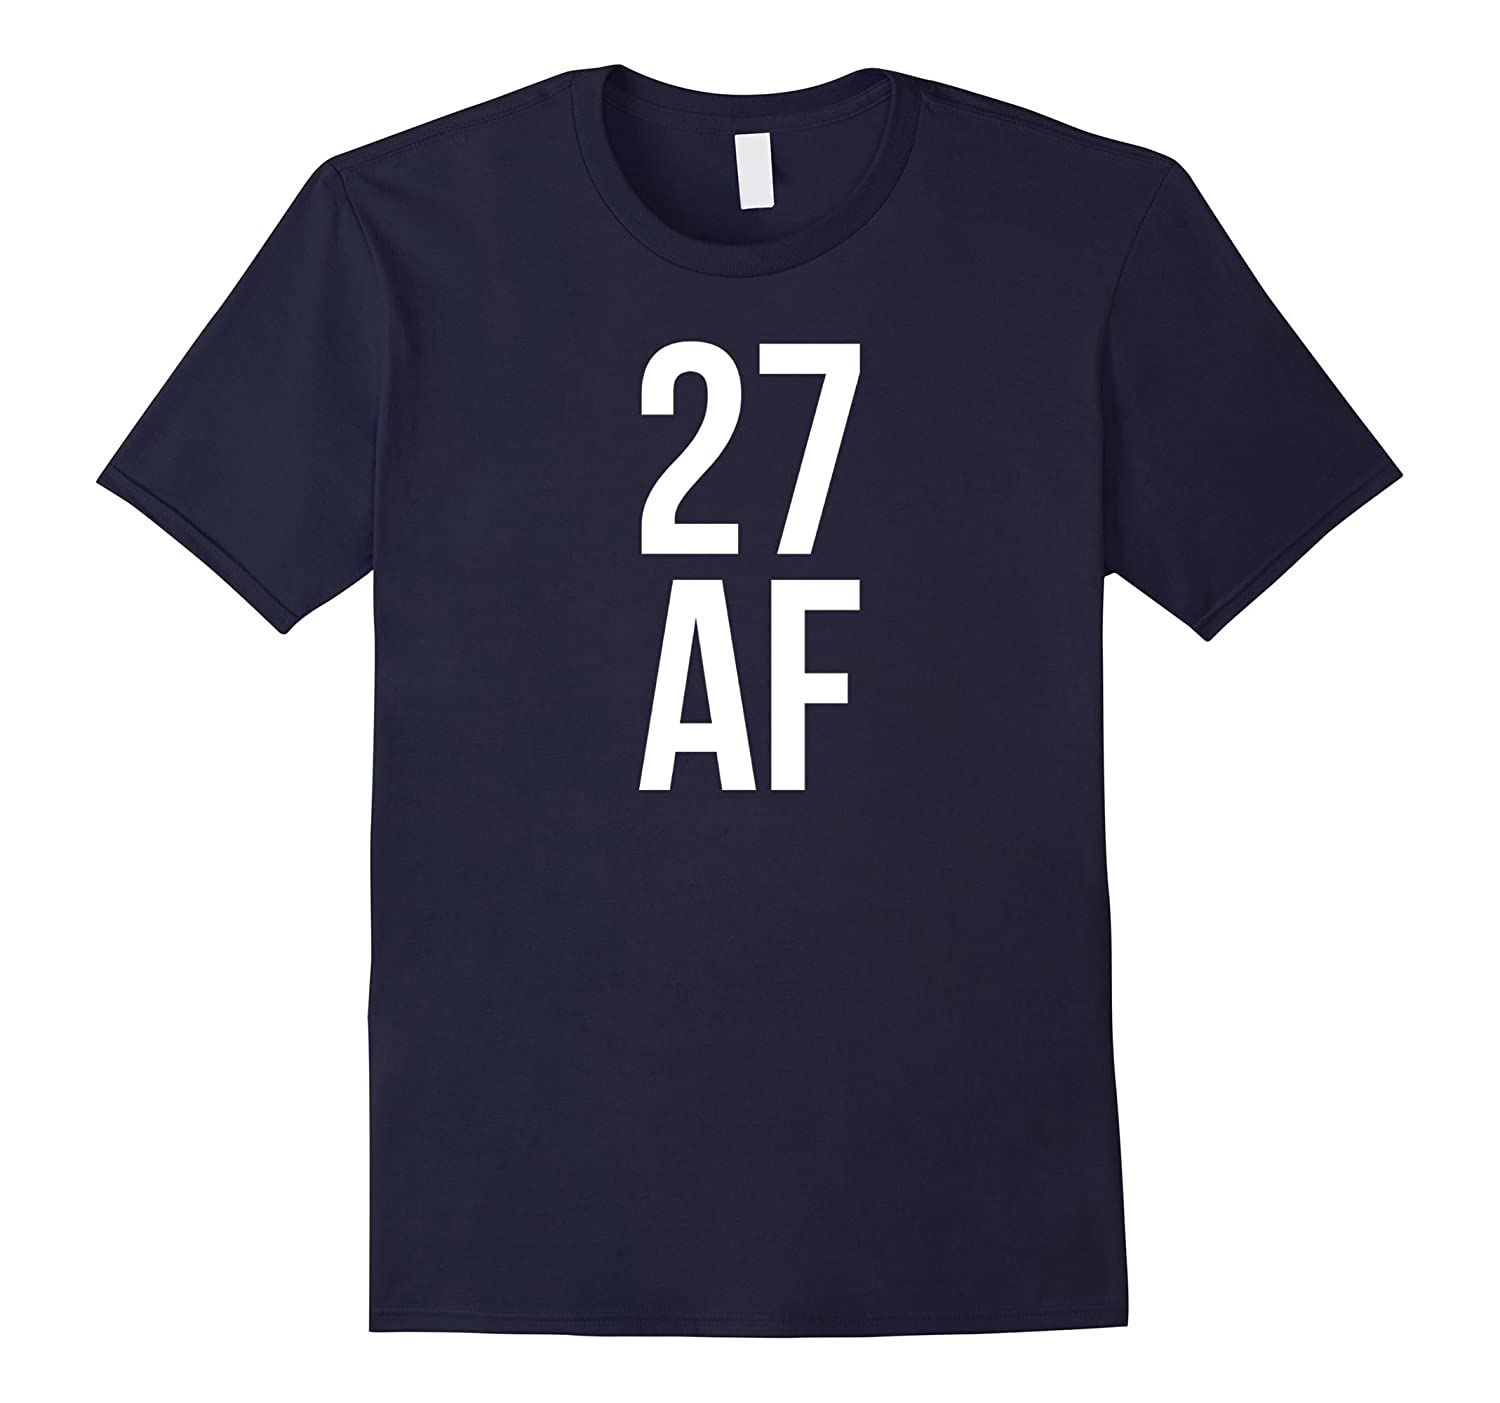 27 AF Tshirt 27th Birthday Shirt Tee Top Mens Womens-TH